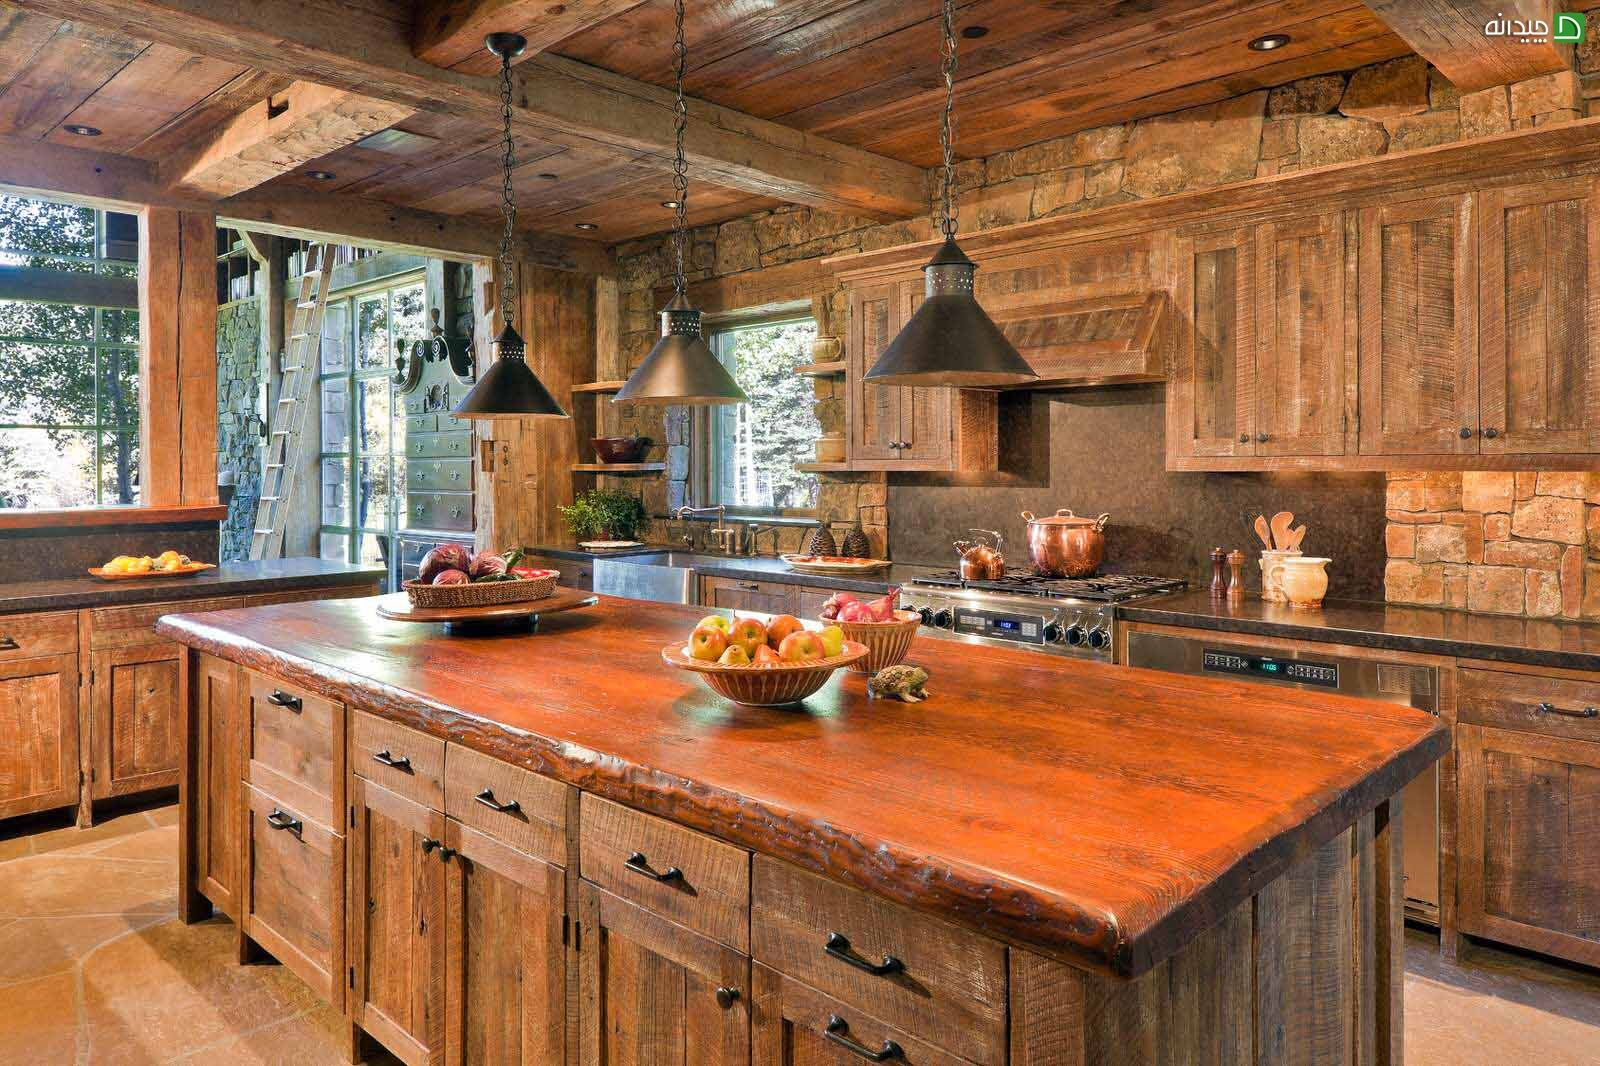 Nice reddish tone in the color palette of the rustic kitchen decoration